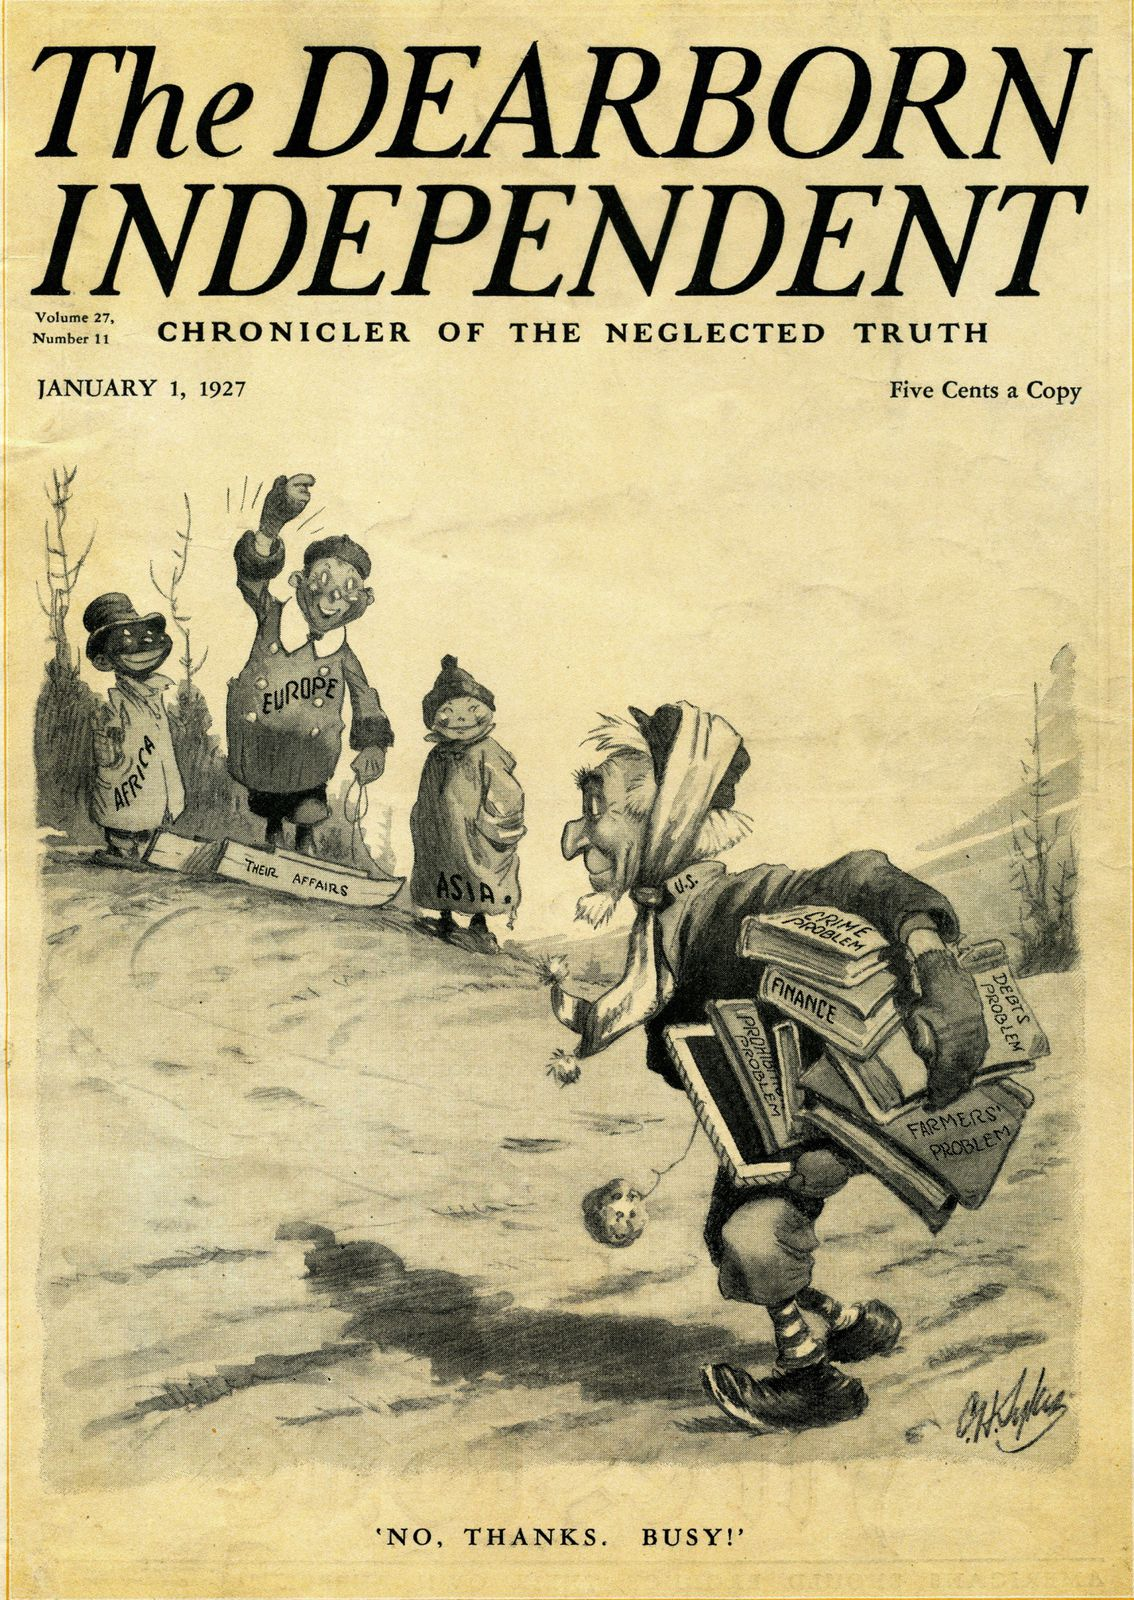 Vicente Blasco Ibañez and The Deadborn Independant on 1927.